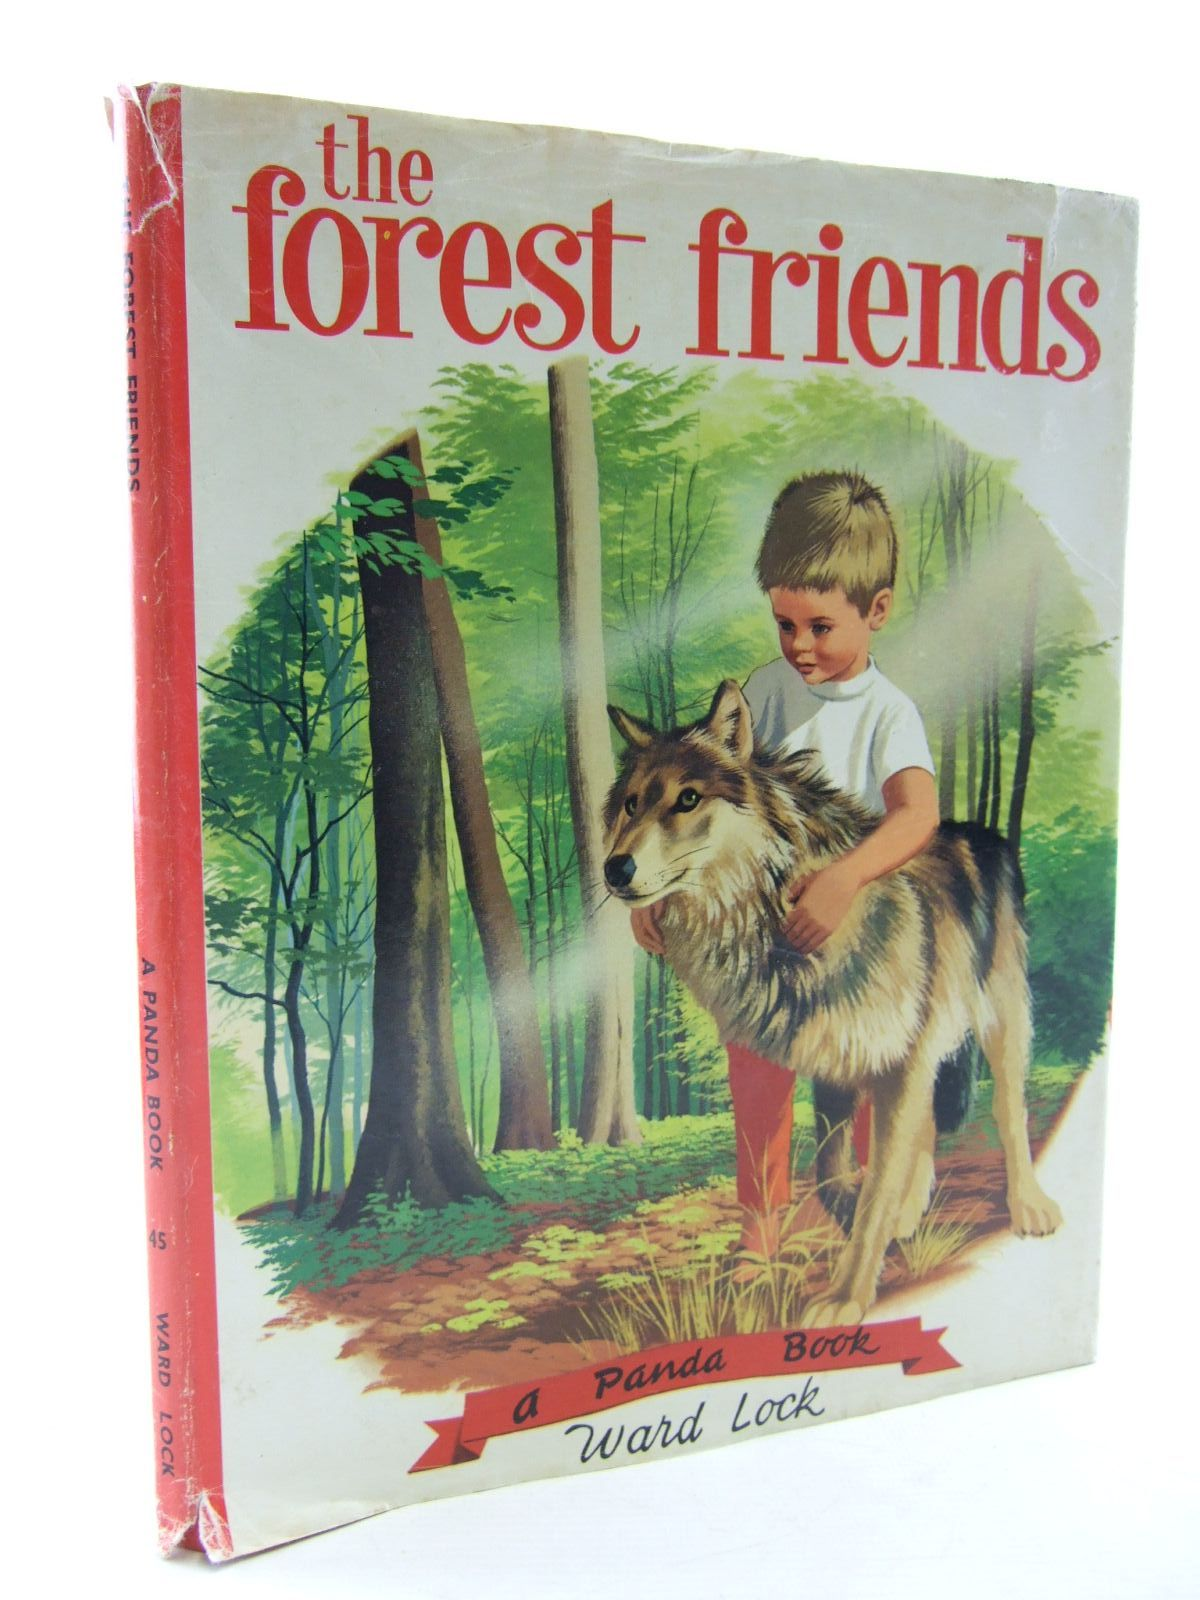 Photo of THE FOREST FRIENDS written by Woods, Sally illustrated by Salembier, Philippe published by Ward Lock (STOCK CODE: 2107192)  for sale by Stella & Rose's Books